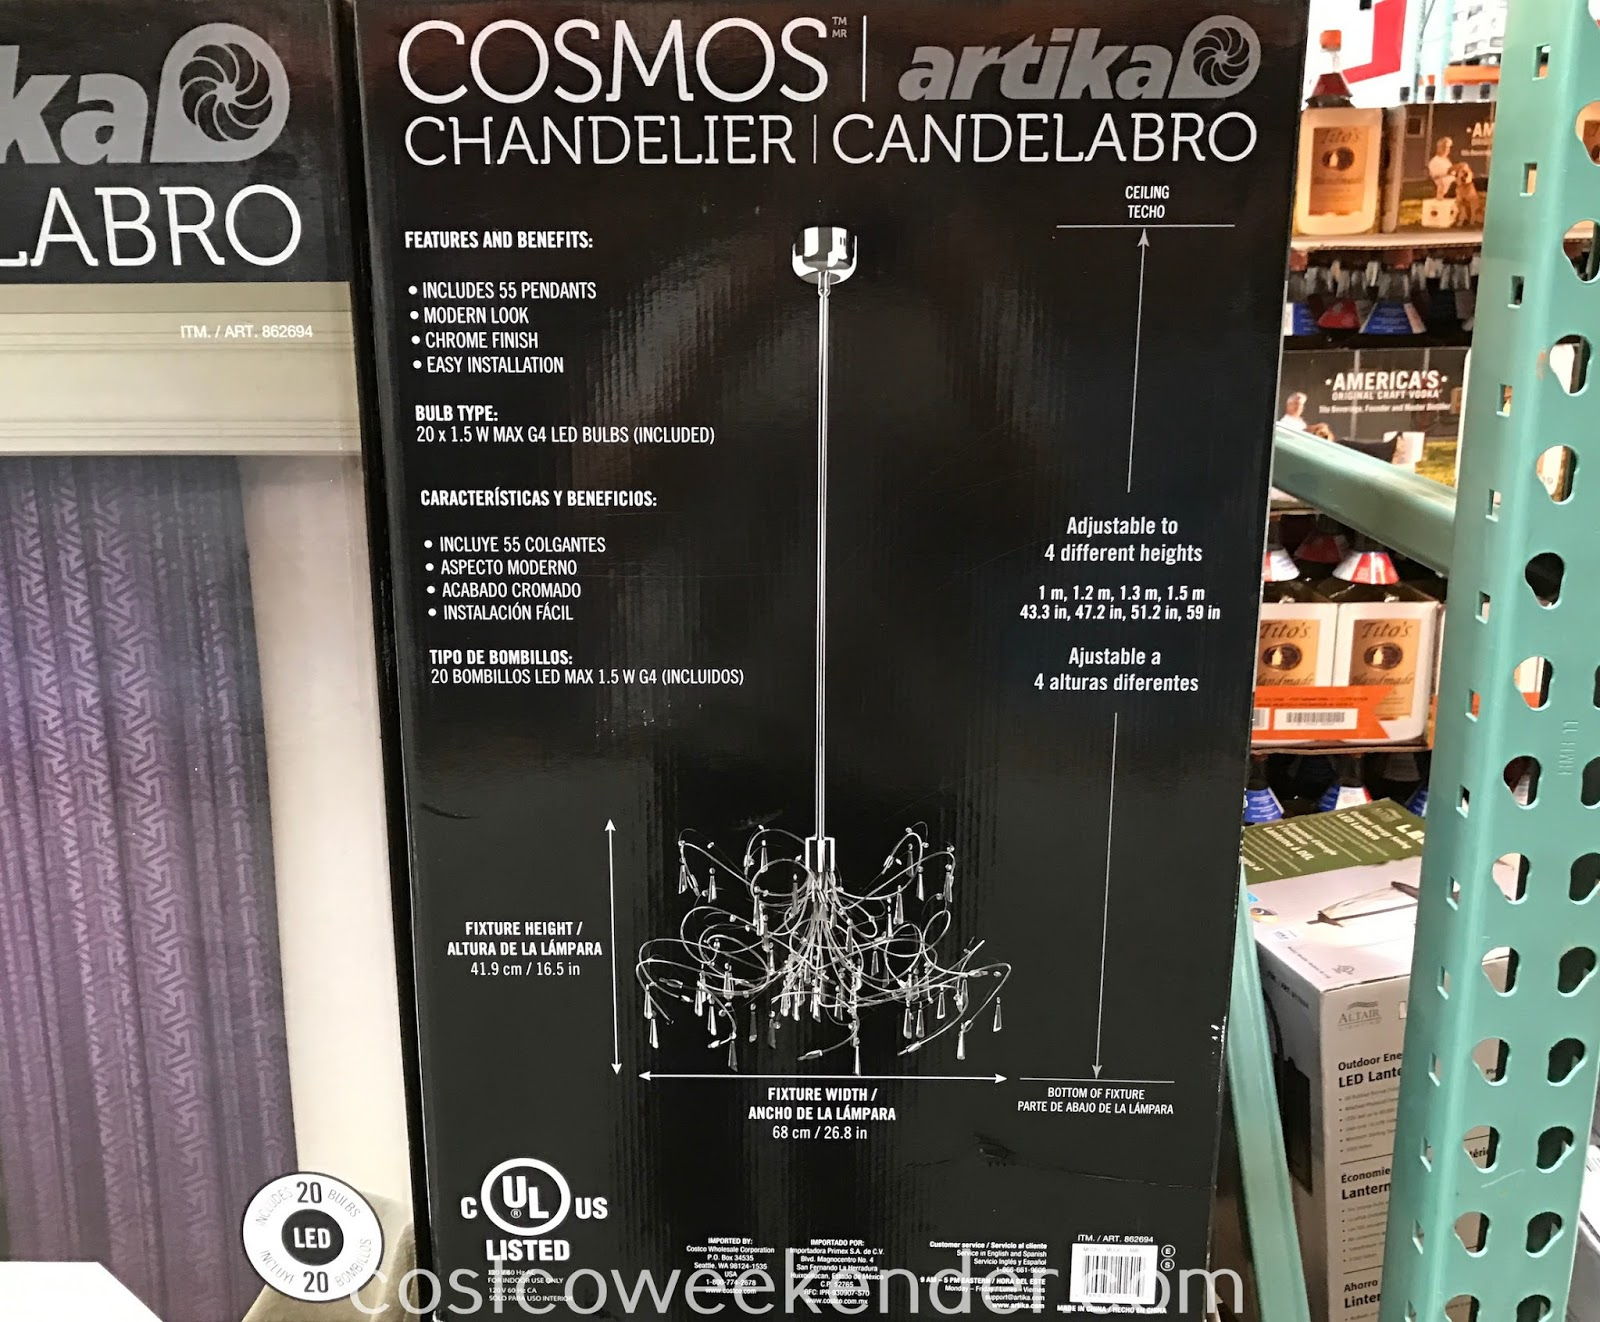 Costco 862694 - Artika Cosmos LED Chandelier: great for any home's dining room